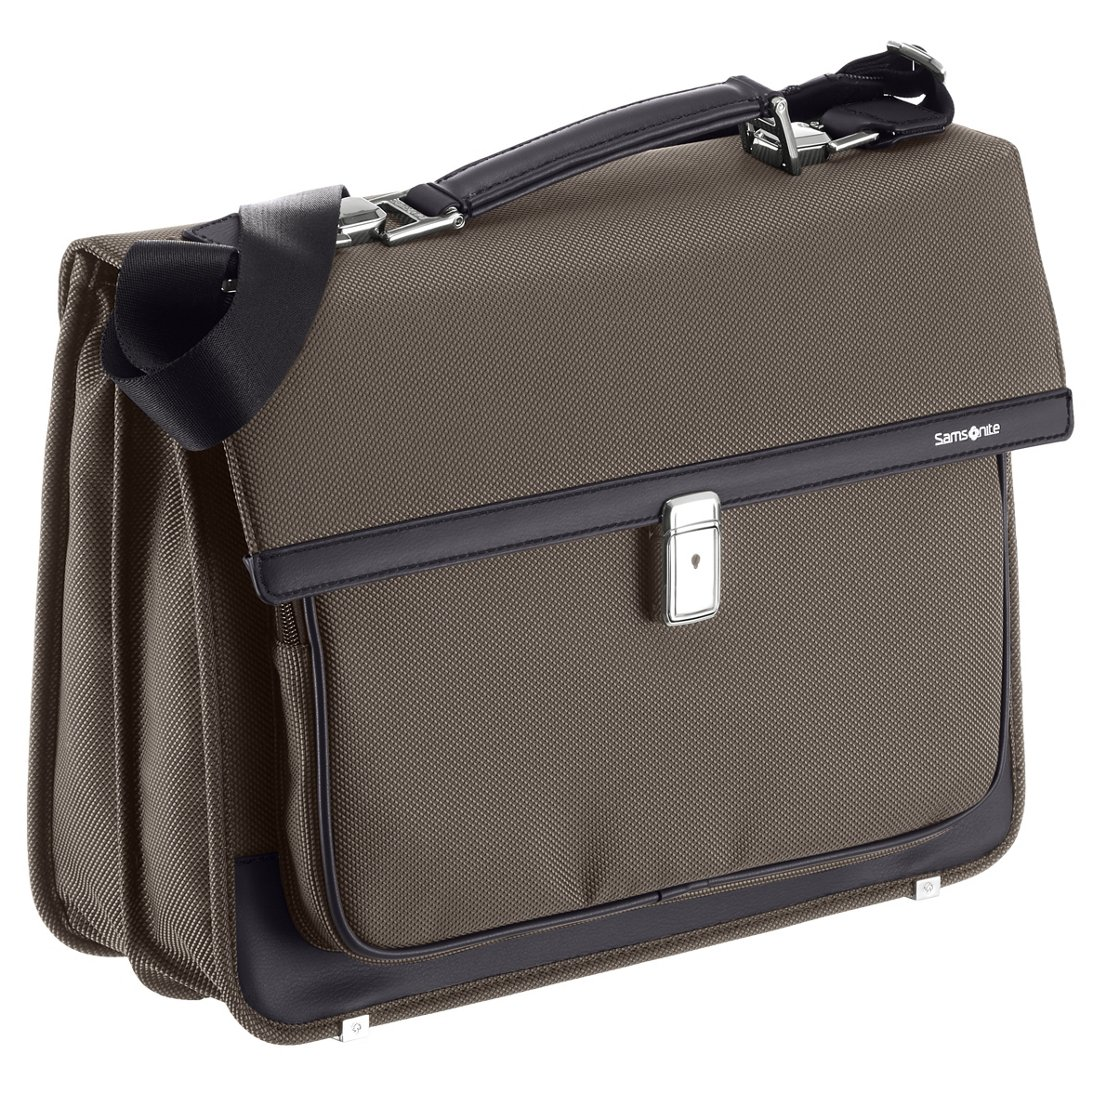 Fairbrook Cm Koffer Businesstasche 42 Samsonite 7dqnSPq